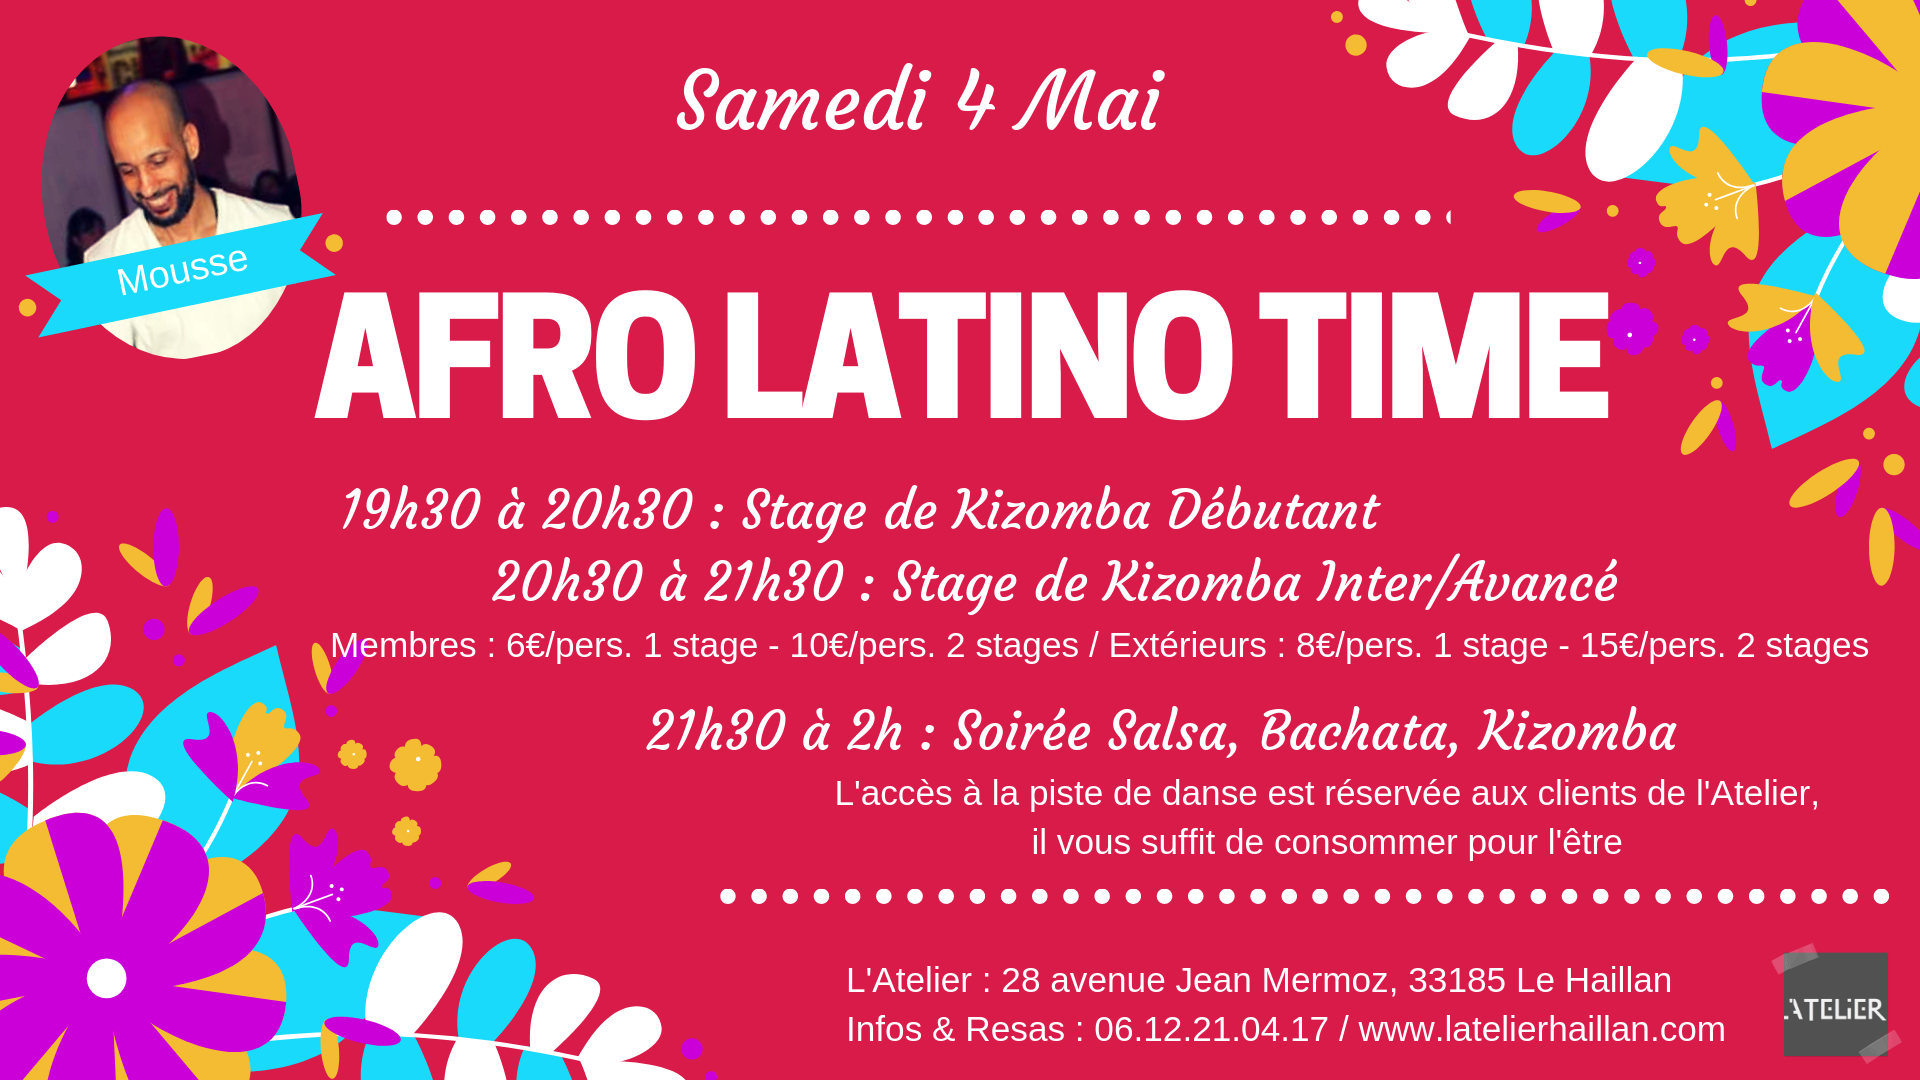 Afro Latino Time avec Mousse - 2 stages de Kizomba